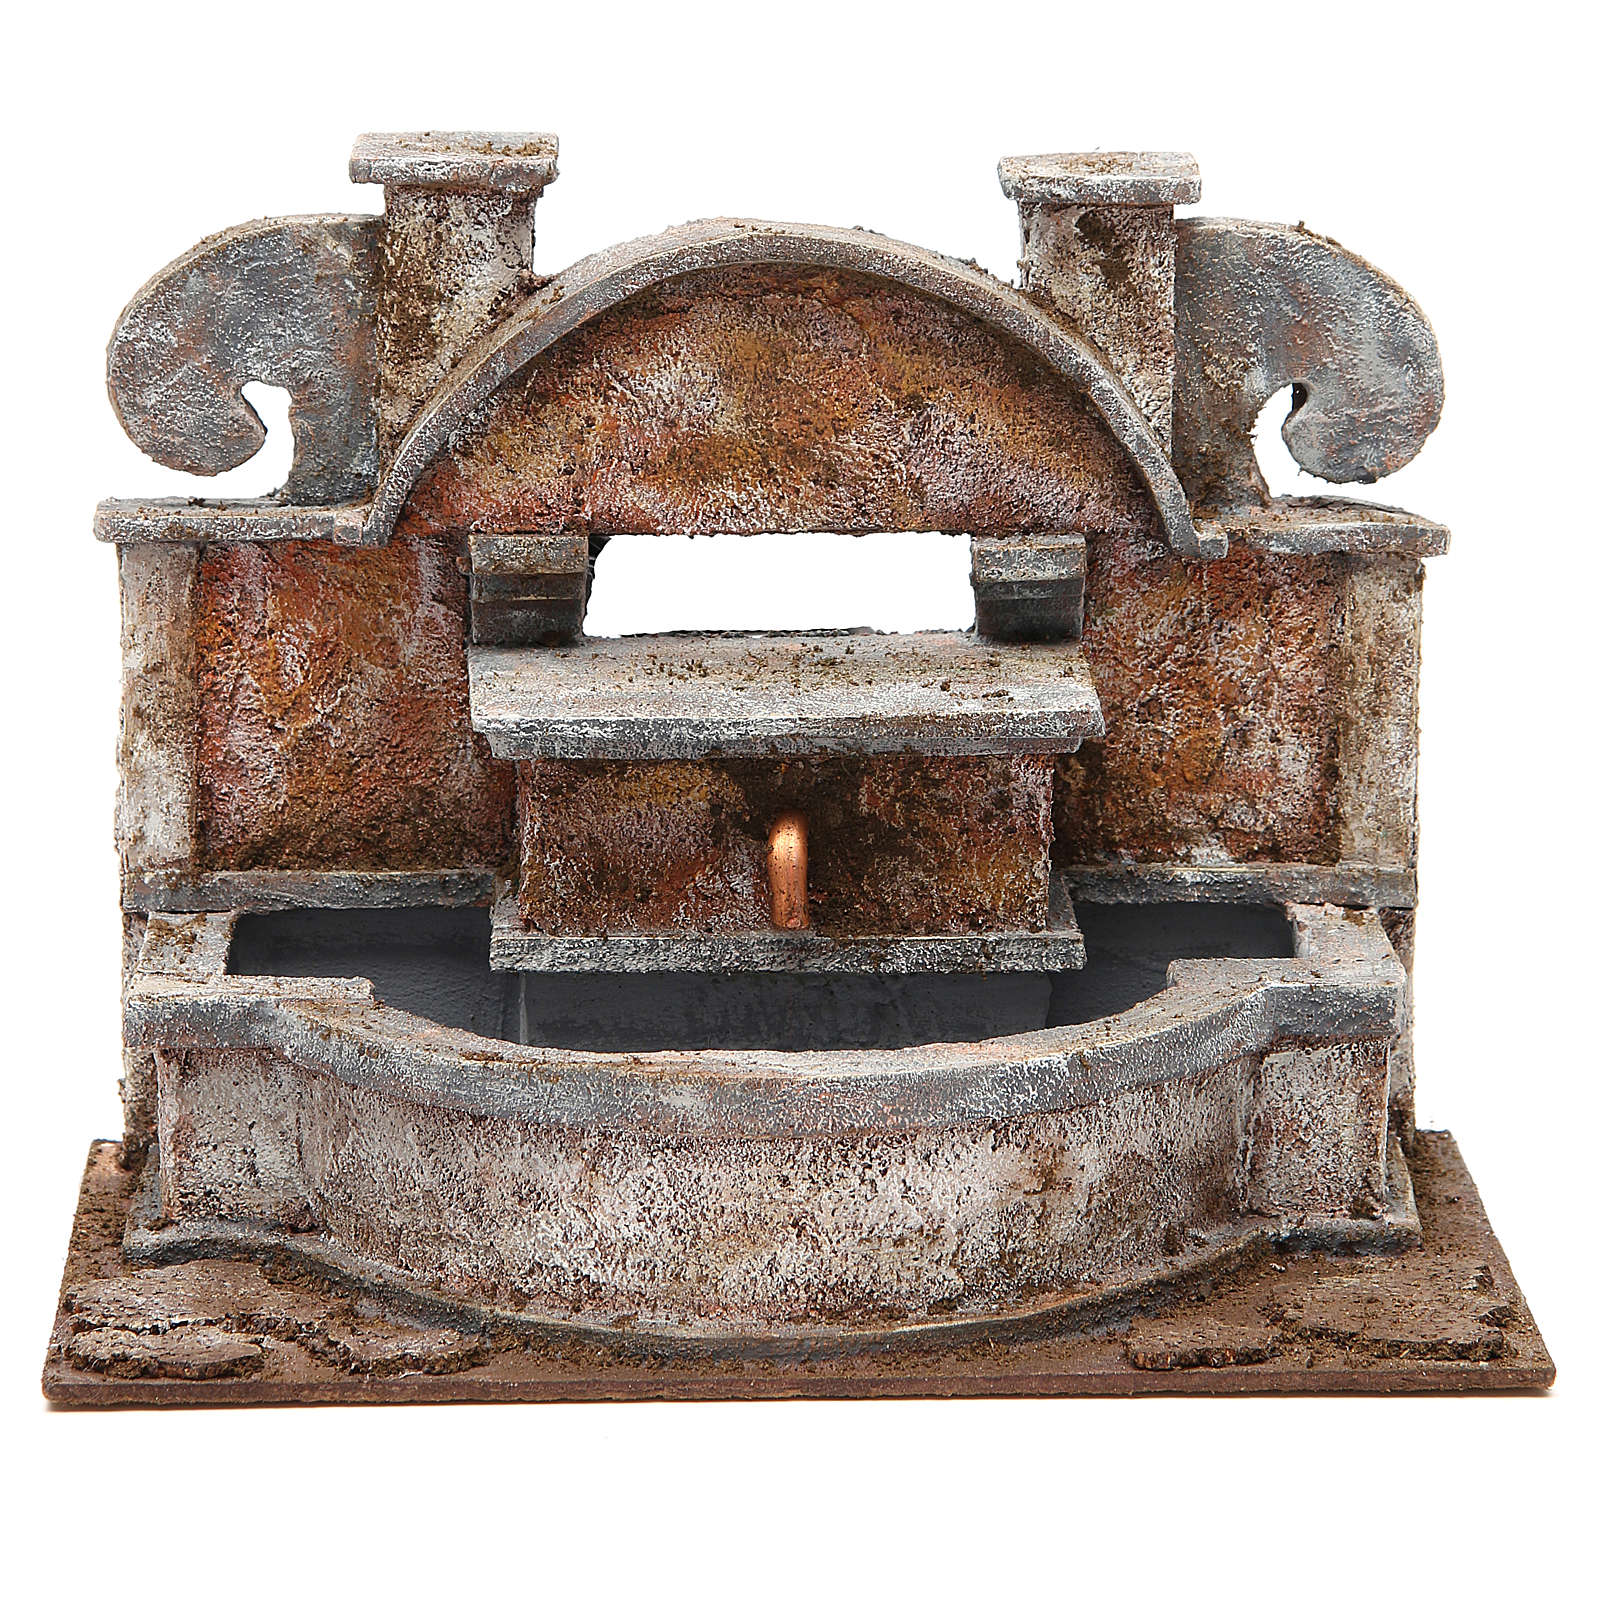 Rustic Fountain nativity with big basins 20x25x15cm 4